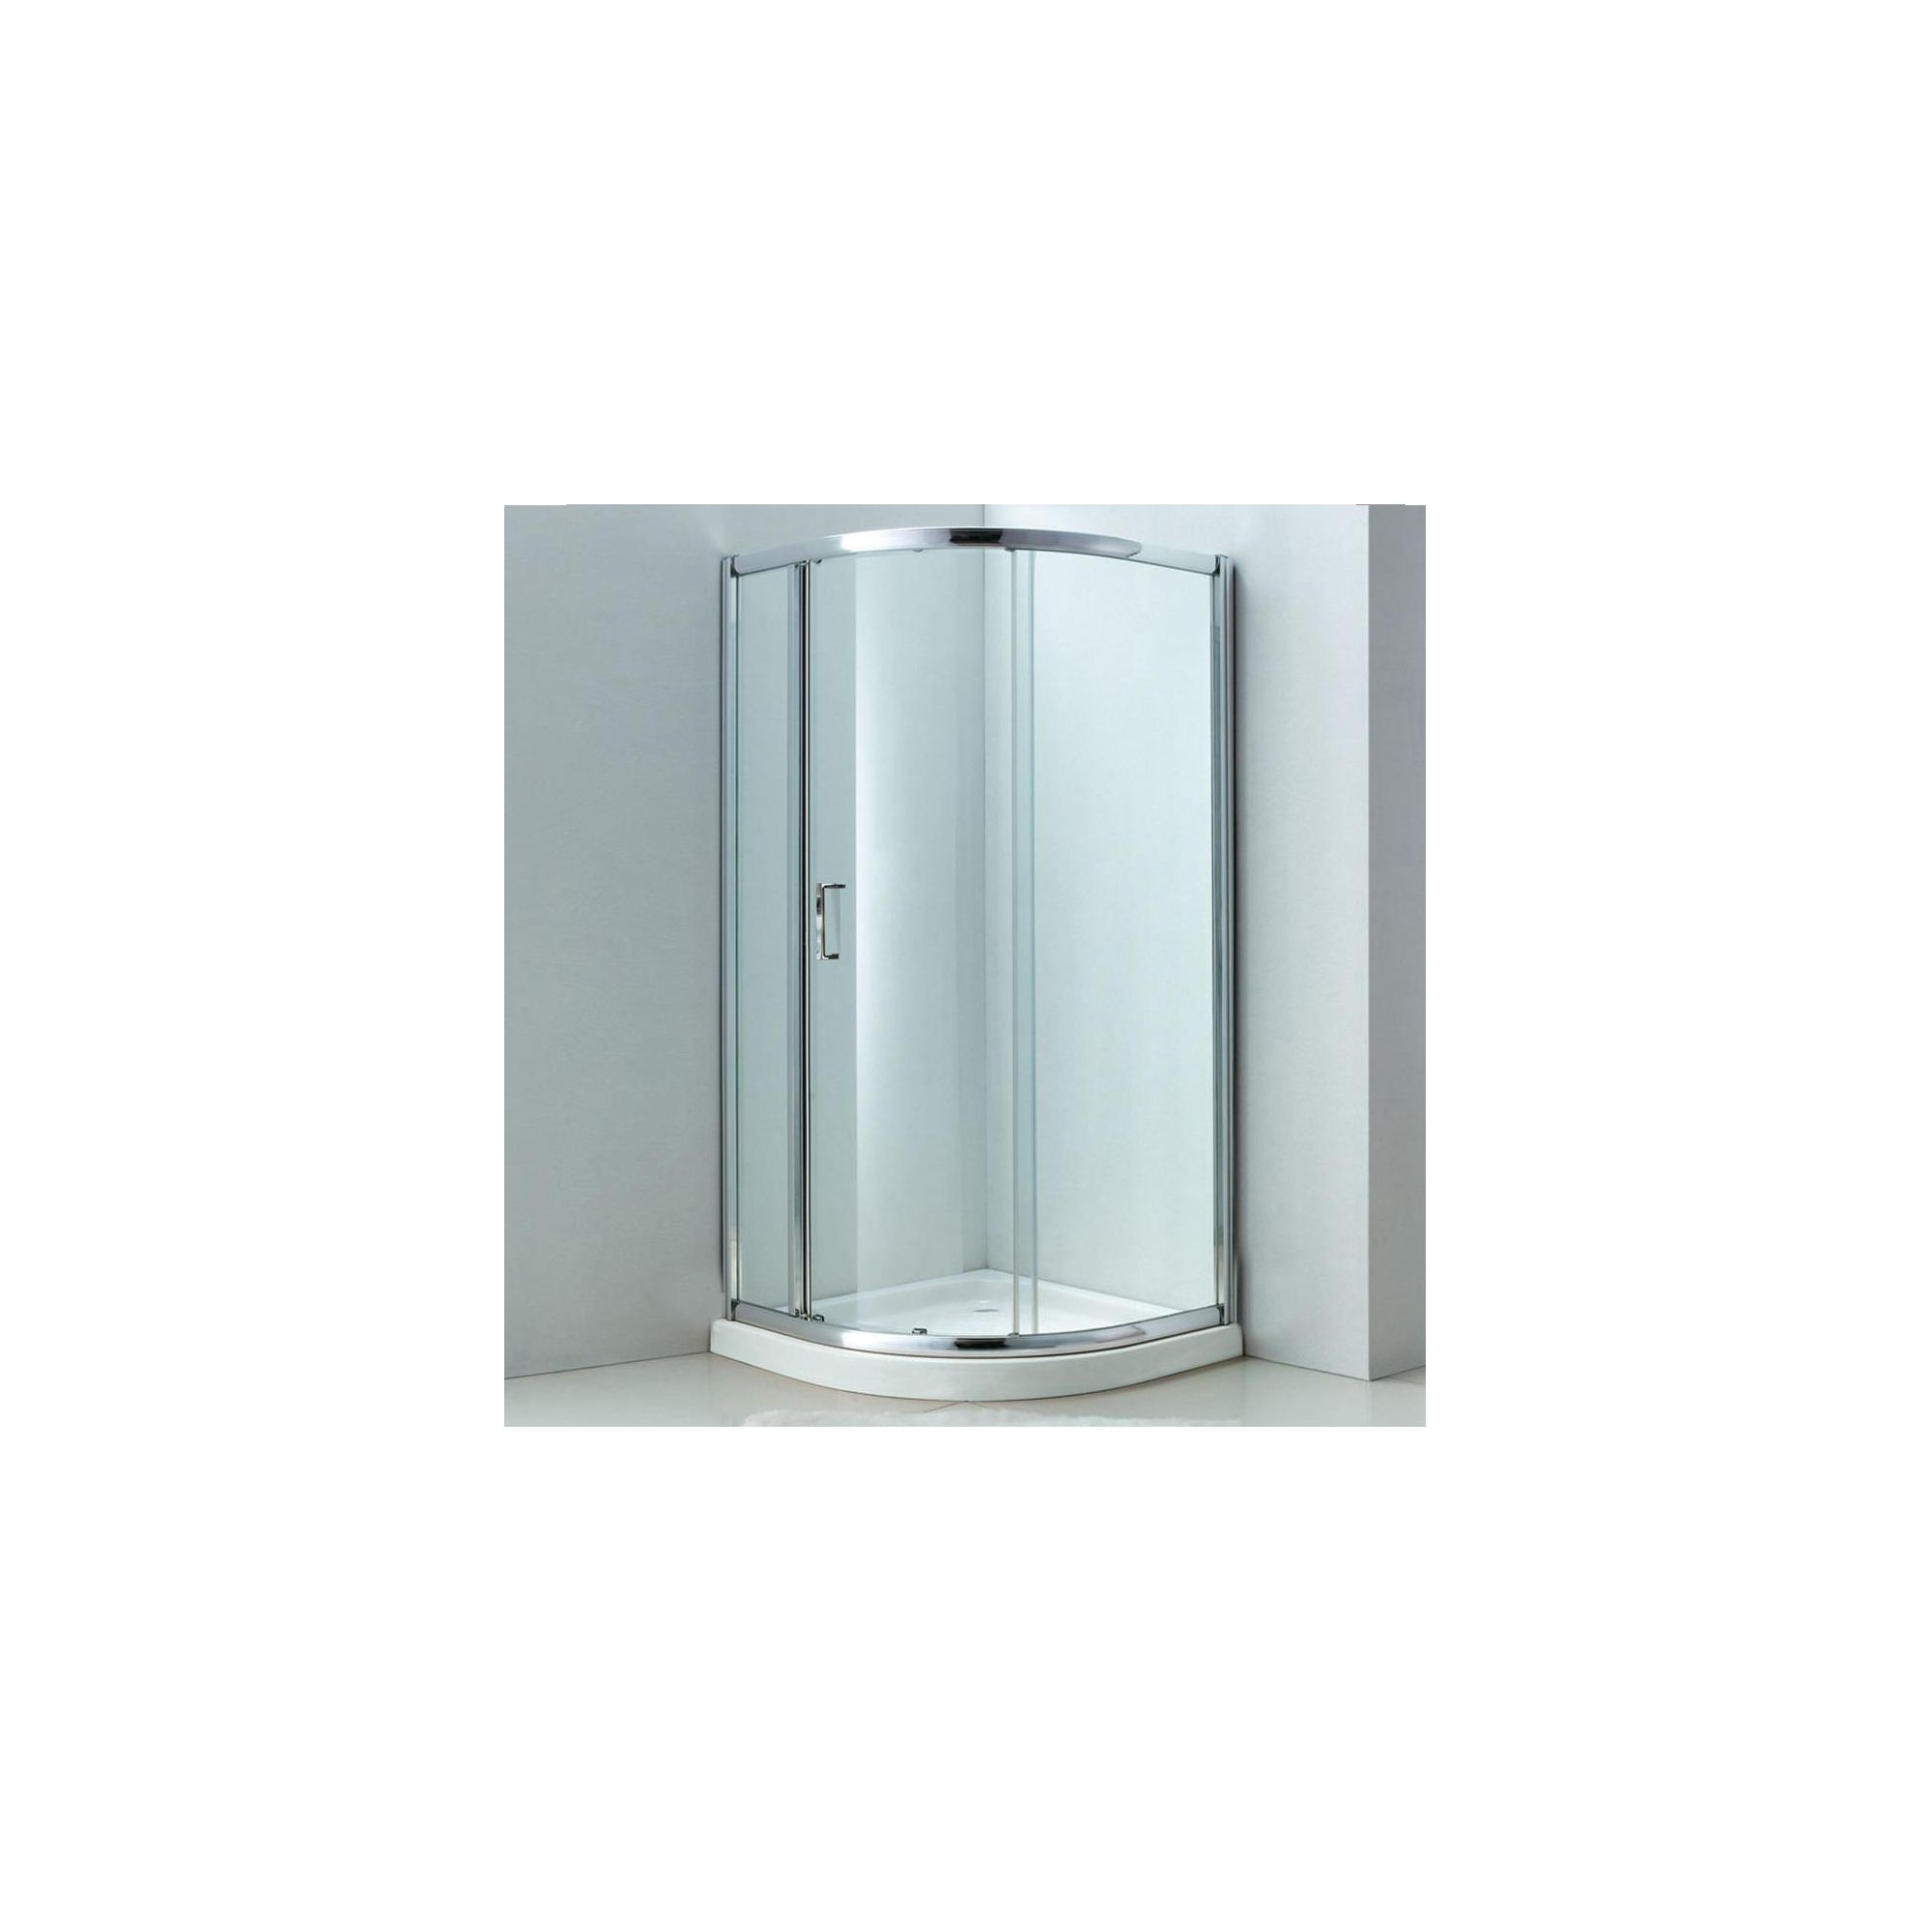 Duchy Style Single Offset Quadrant Door Shower Enclosure, 1200mm x 800mm, 6mm Glass, Low Profile Tray, Left Handed at Tesco Direct